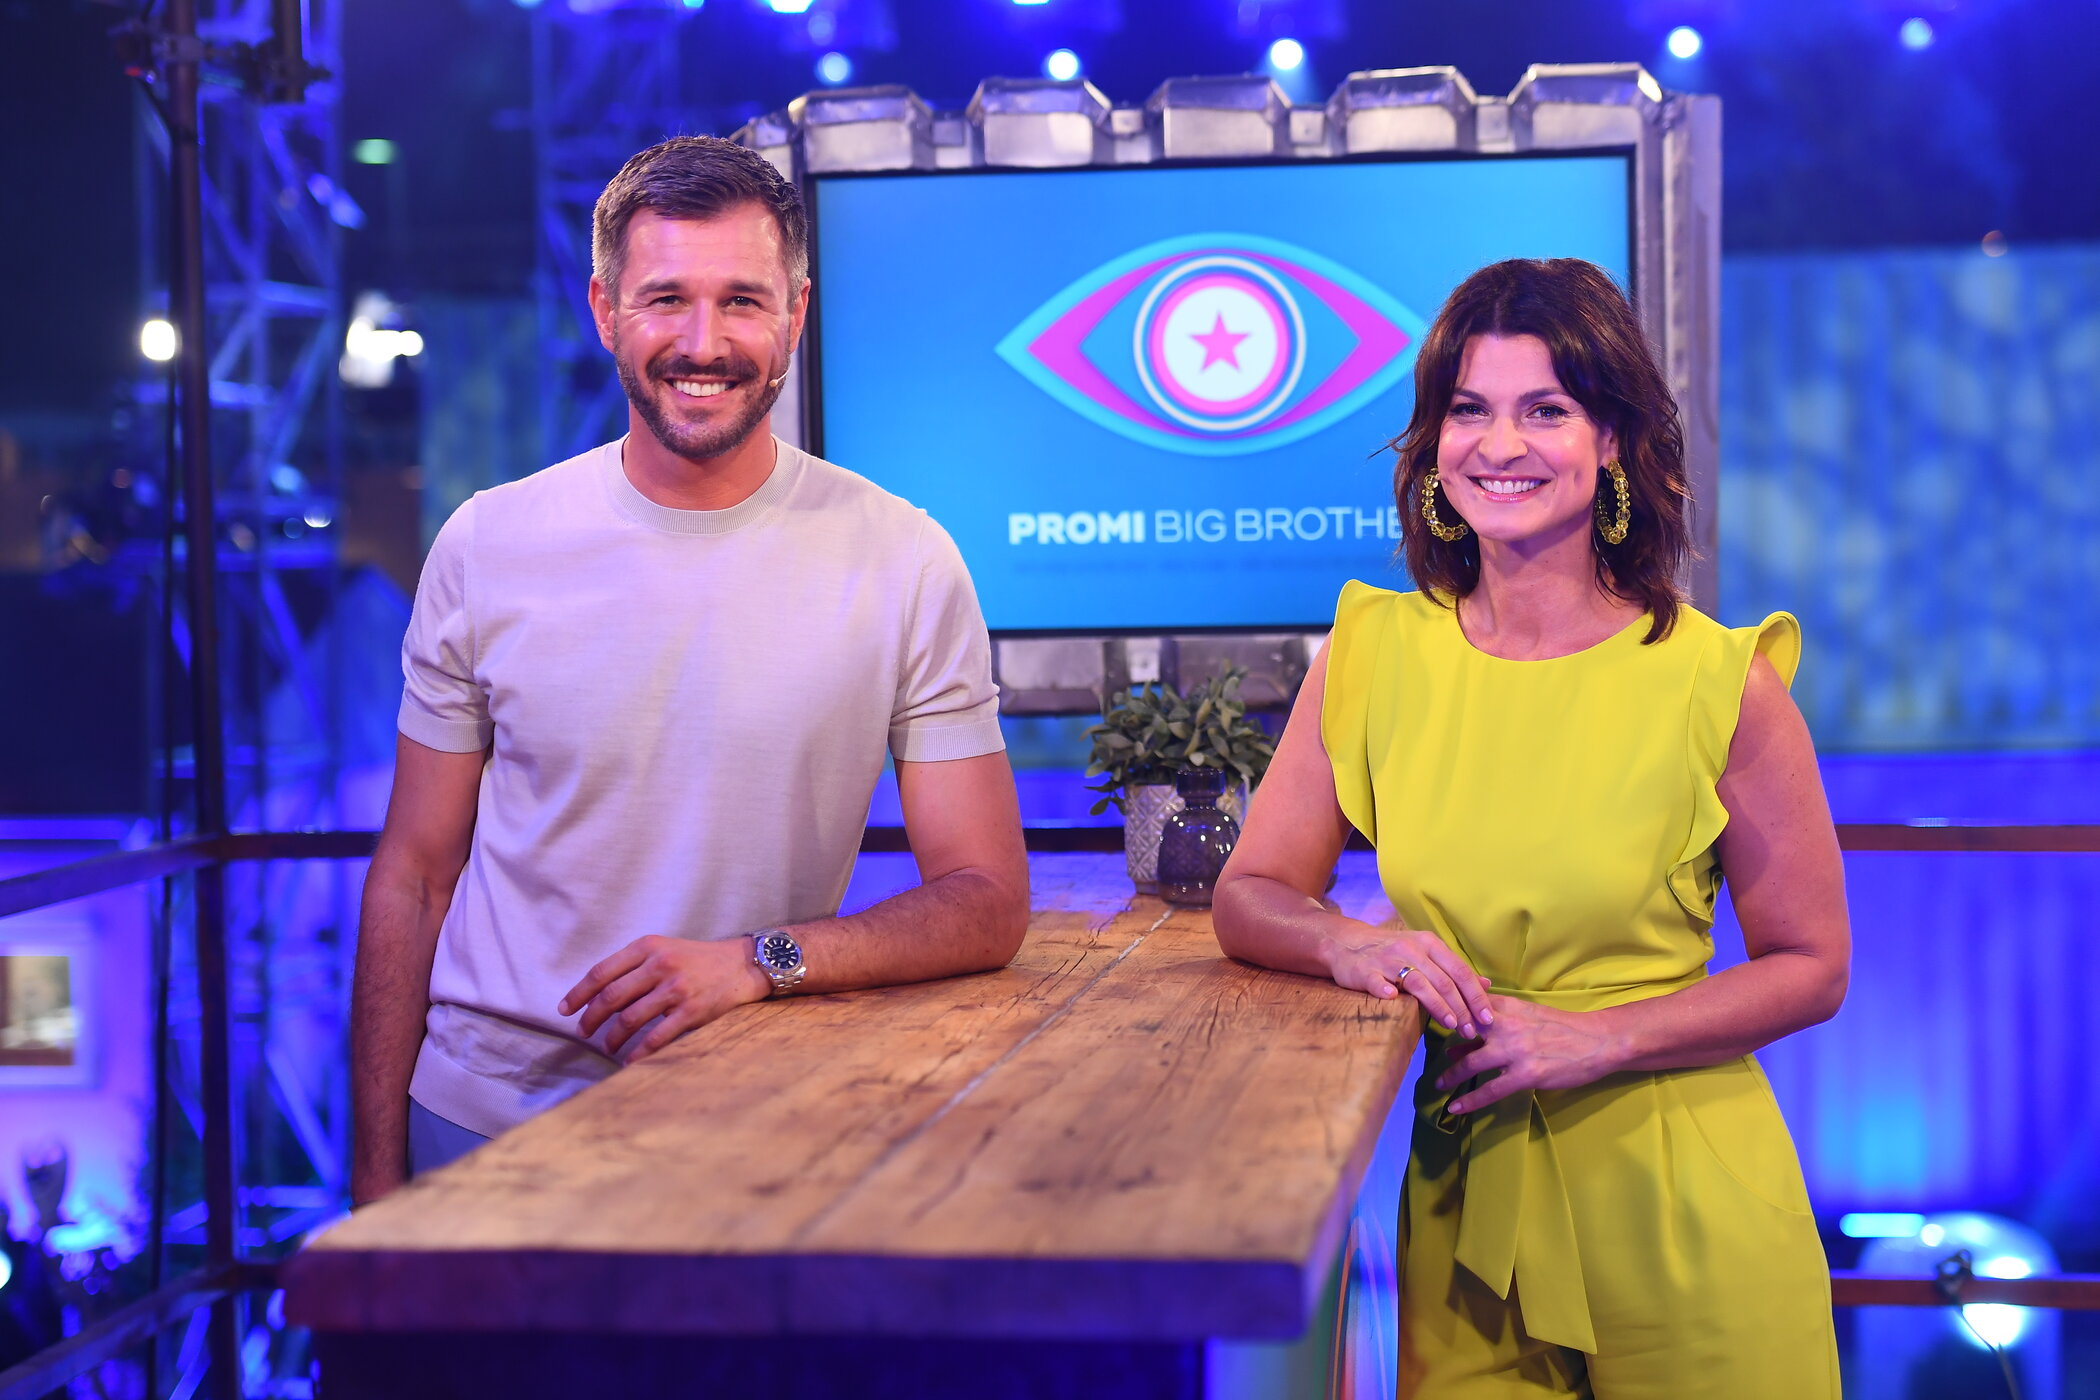 Promi Big Brother 2020 Live-Stream